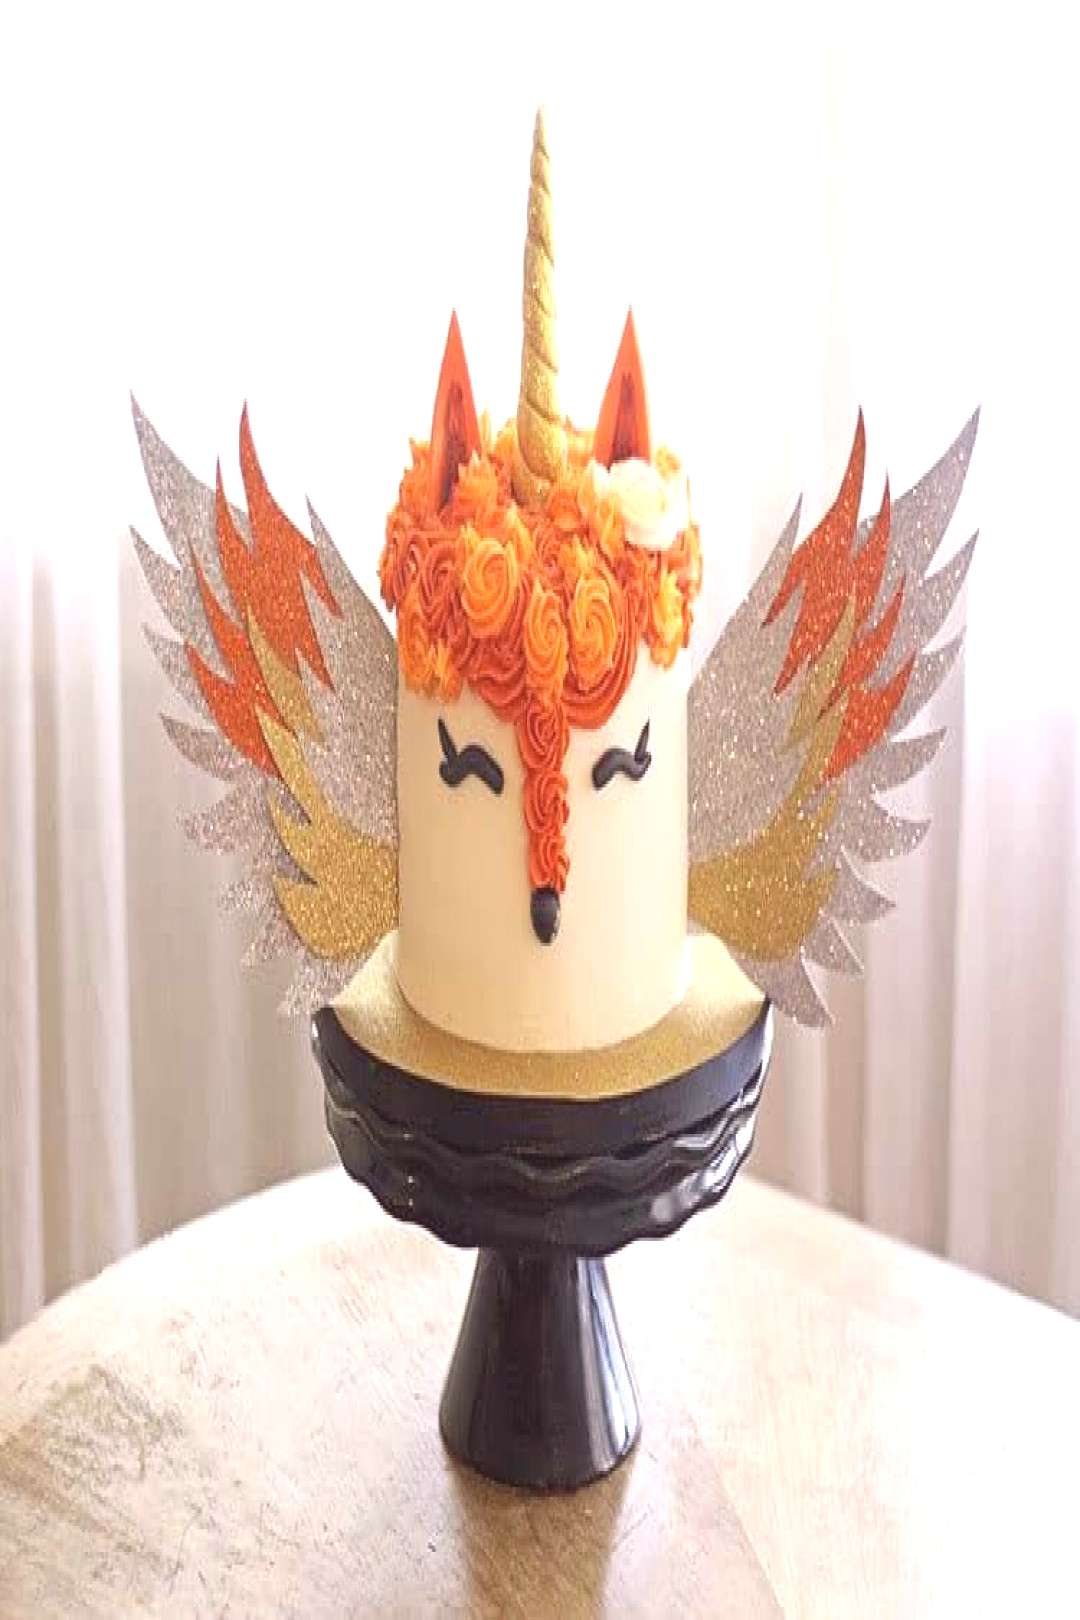 Fox Unicorn Cake with Wings - this unique cake was a fox cake with a unicorn horn and wings.